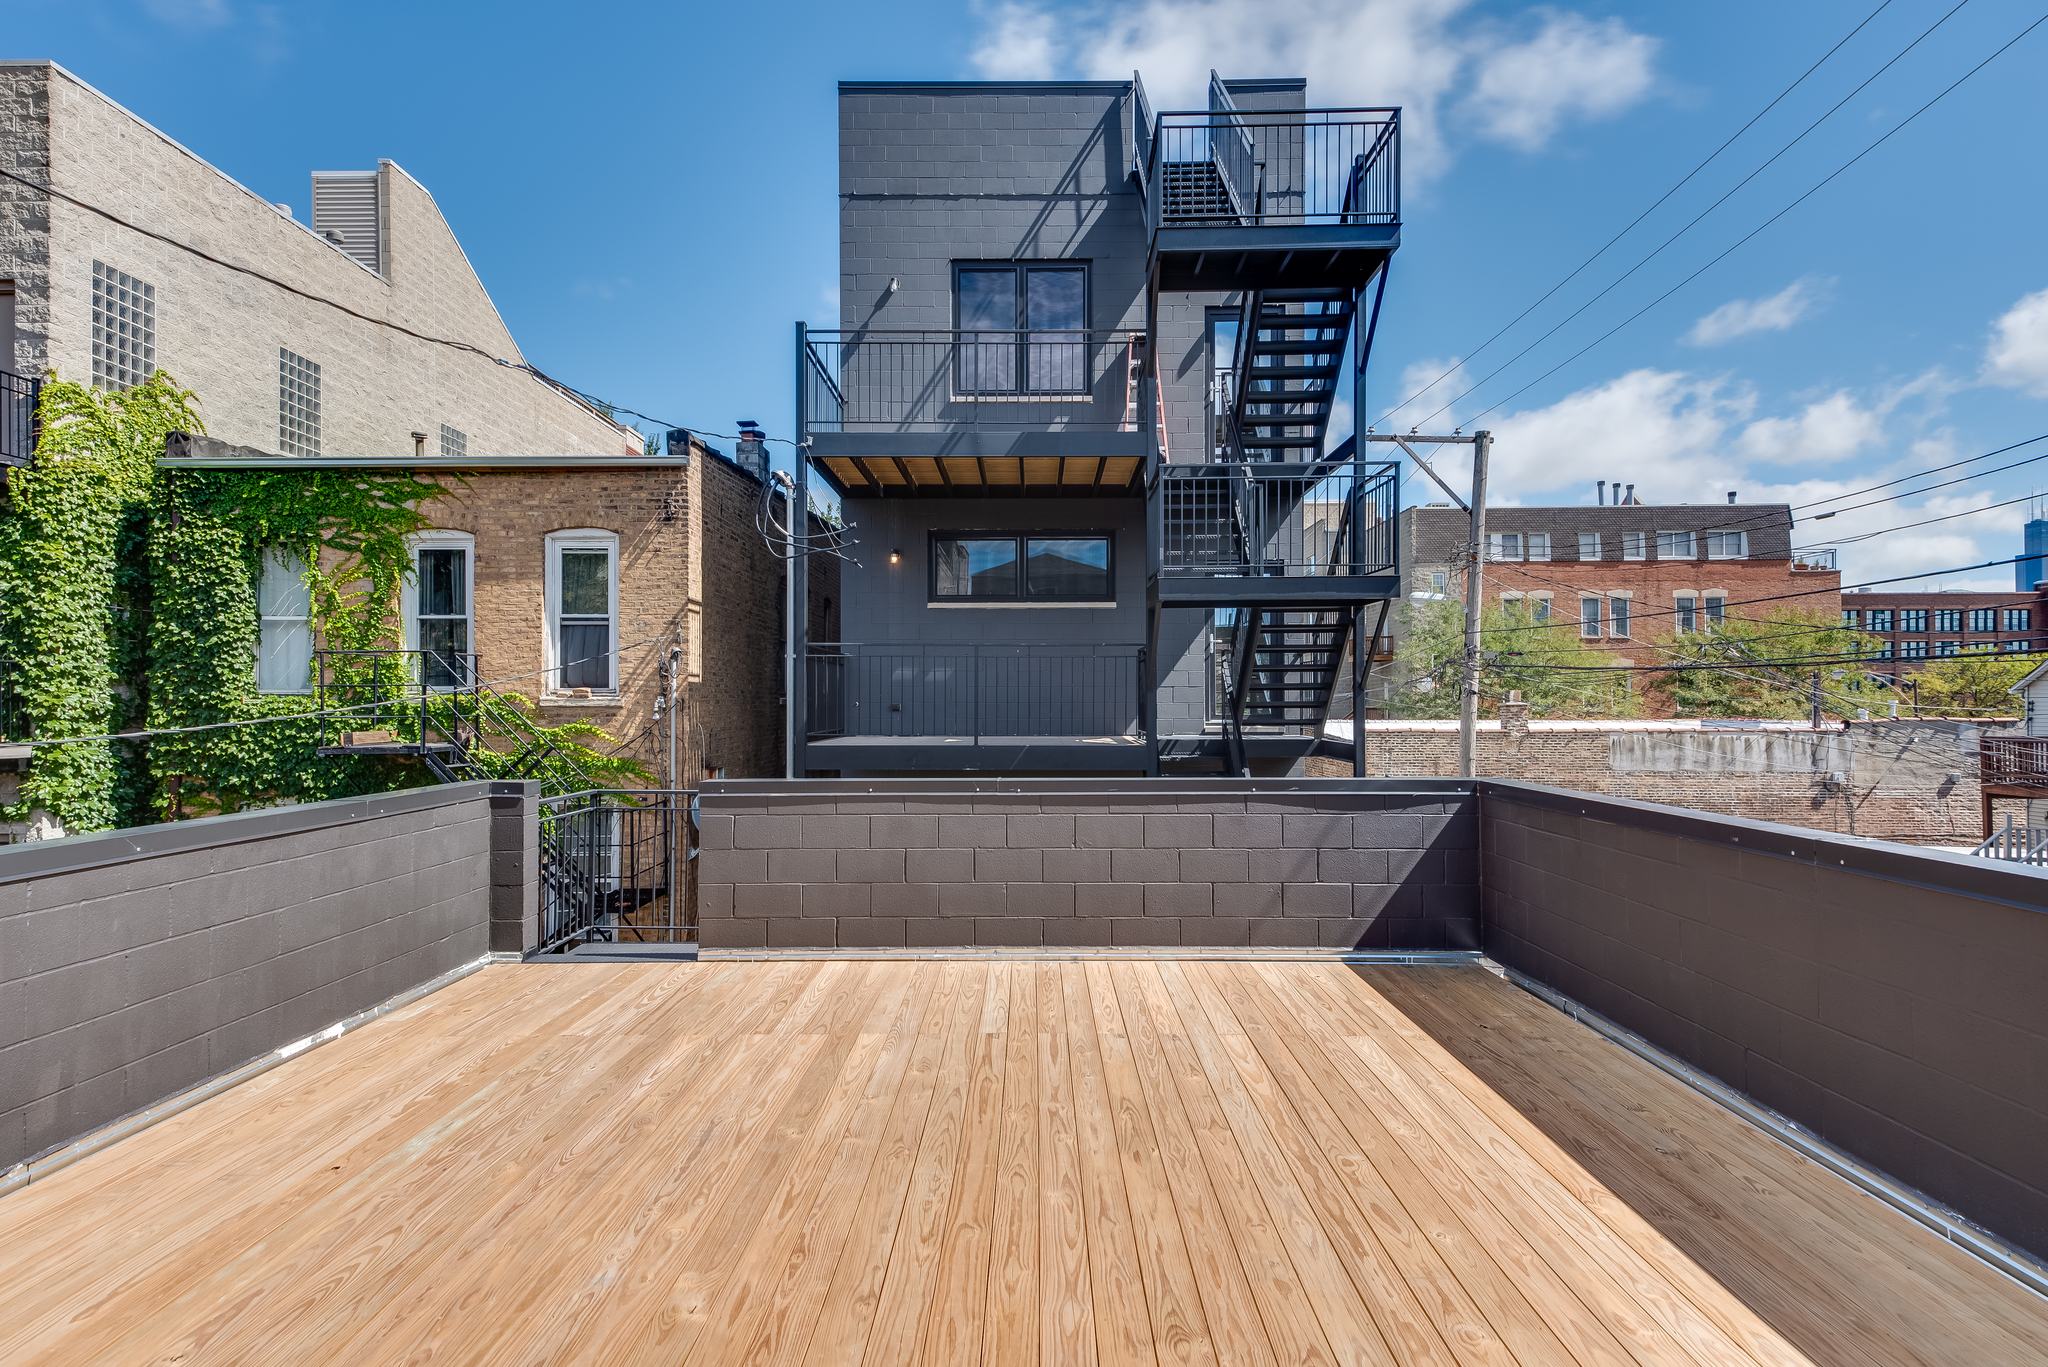 Garage roof deck at 1012 N Paulina St Unit 1, Chicago, IL